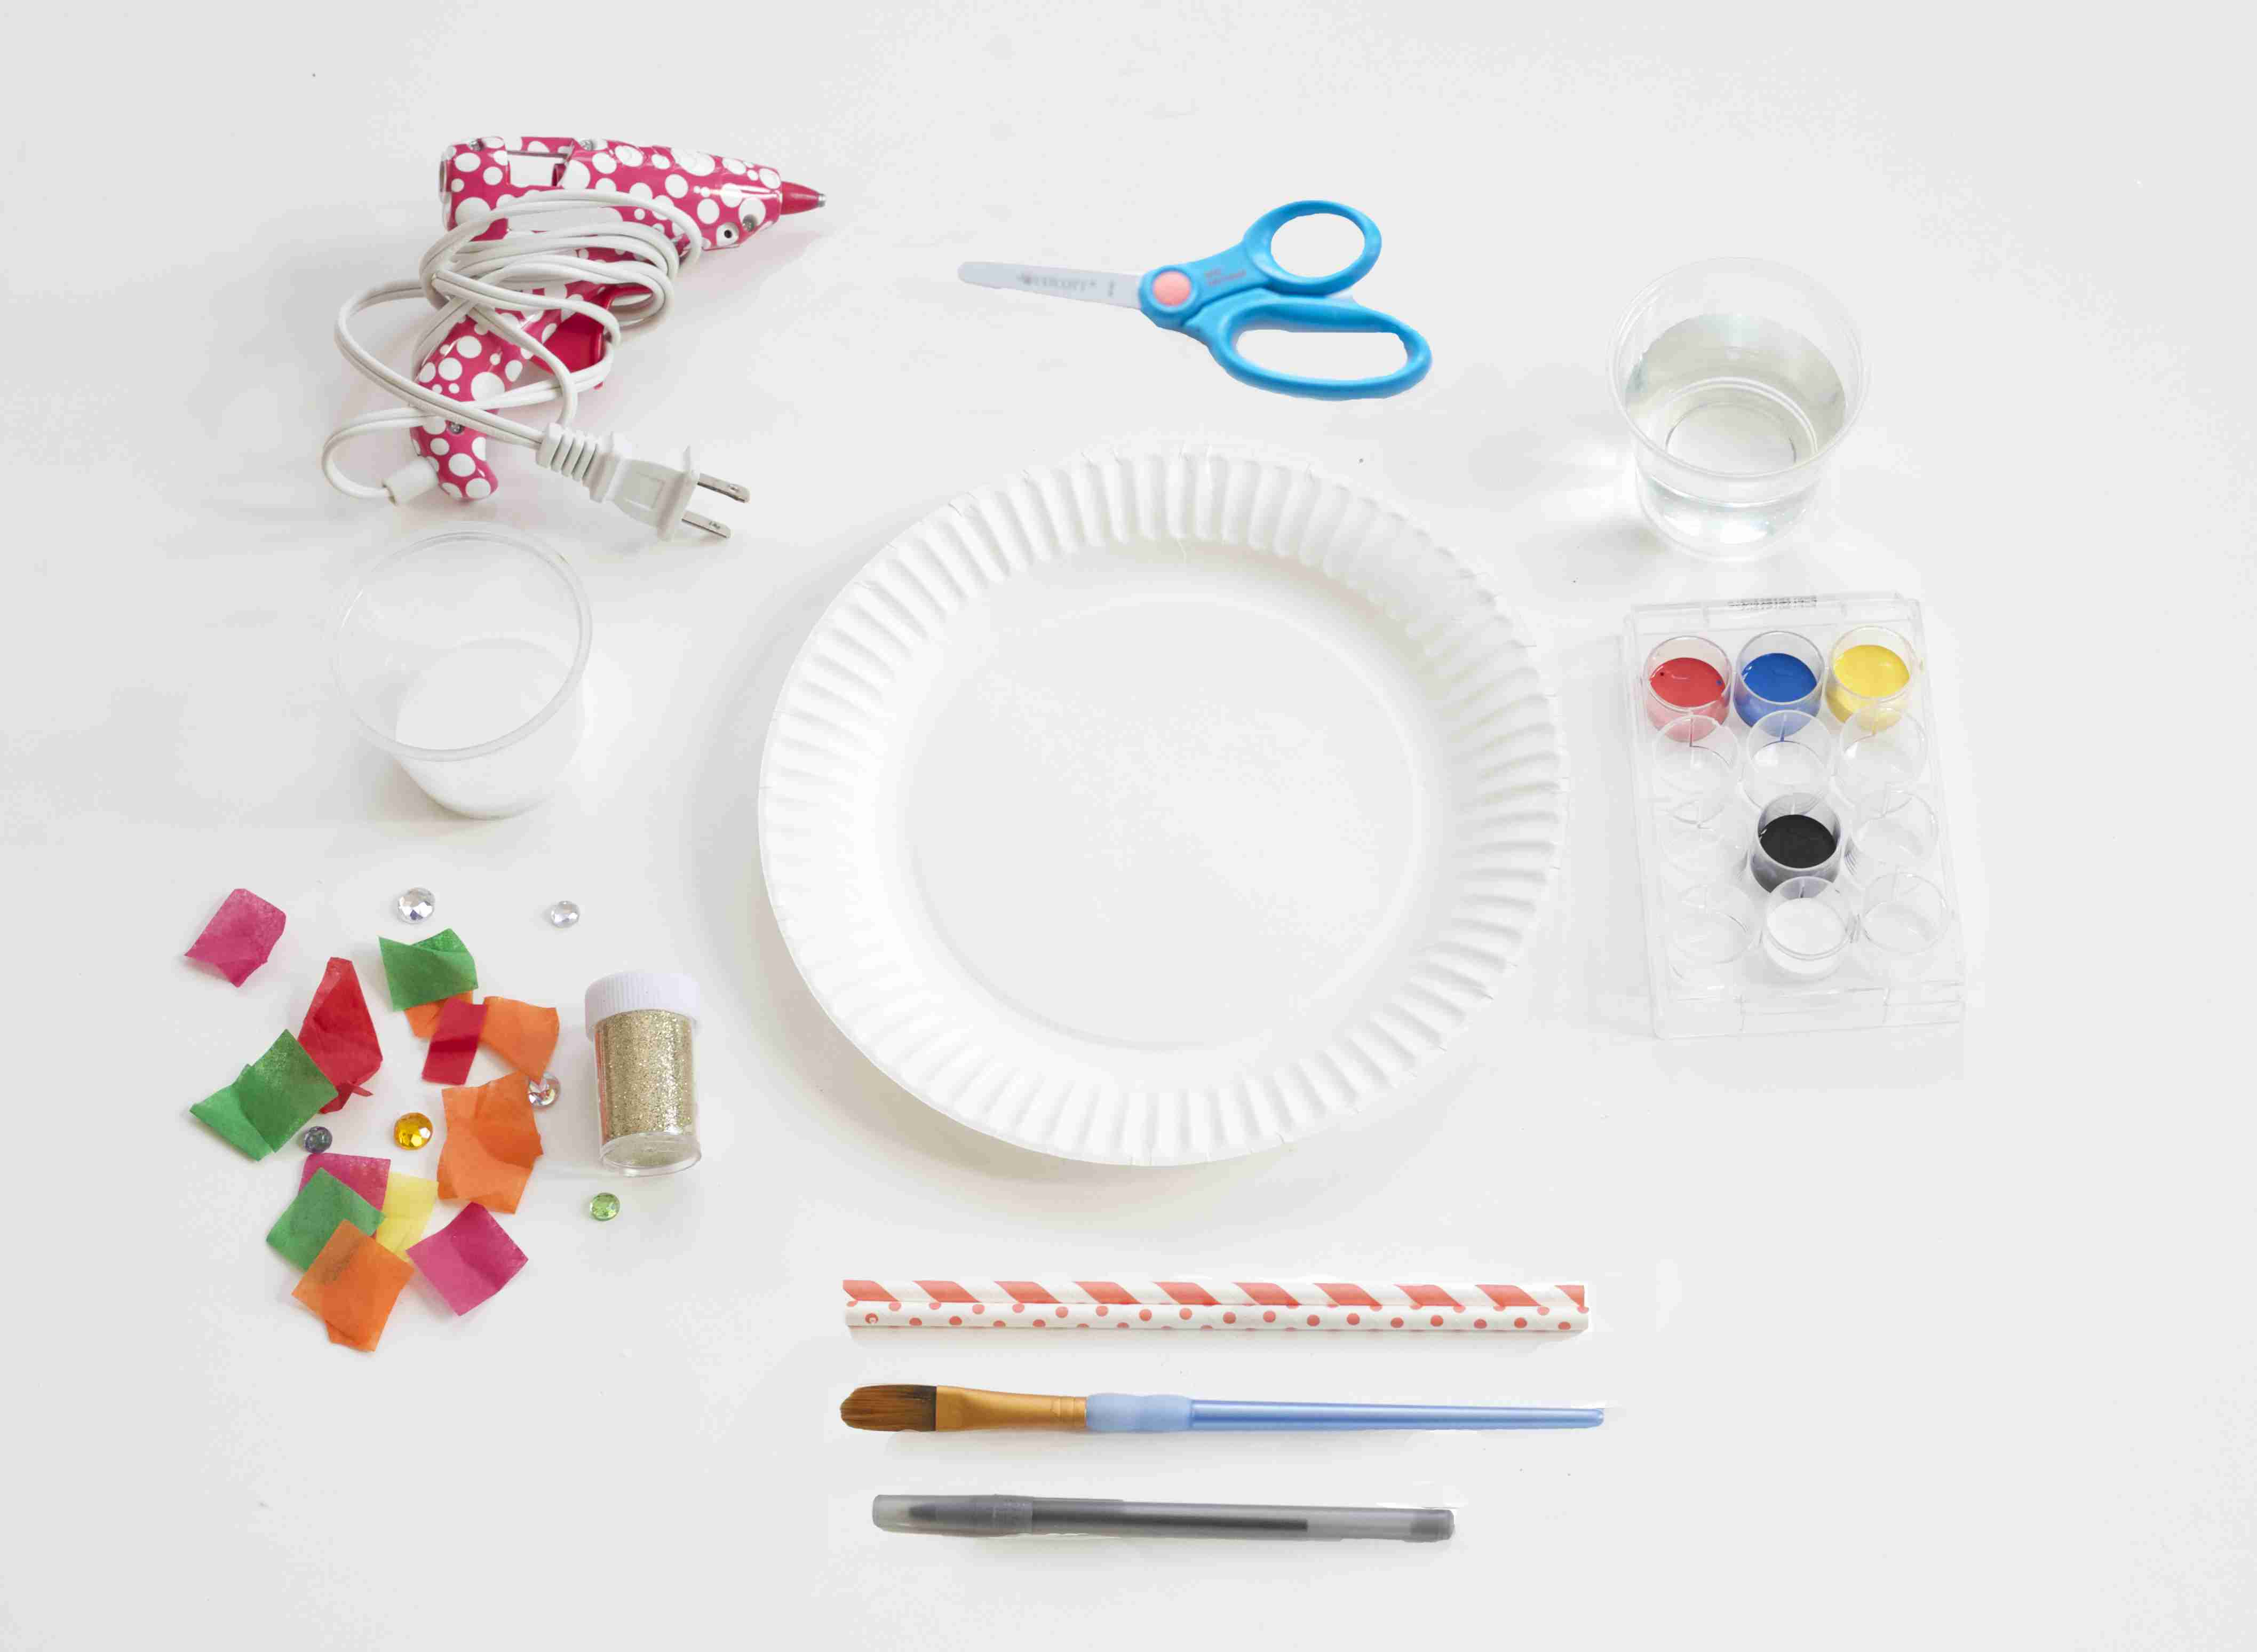 Making paper plate masks: gathering the goods